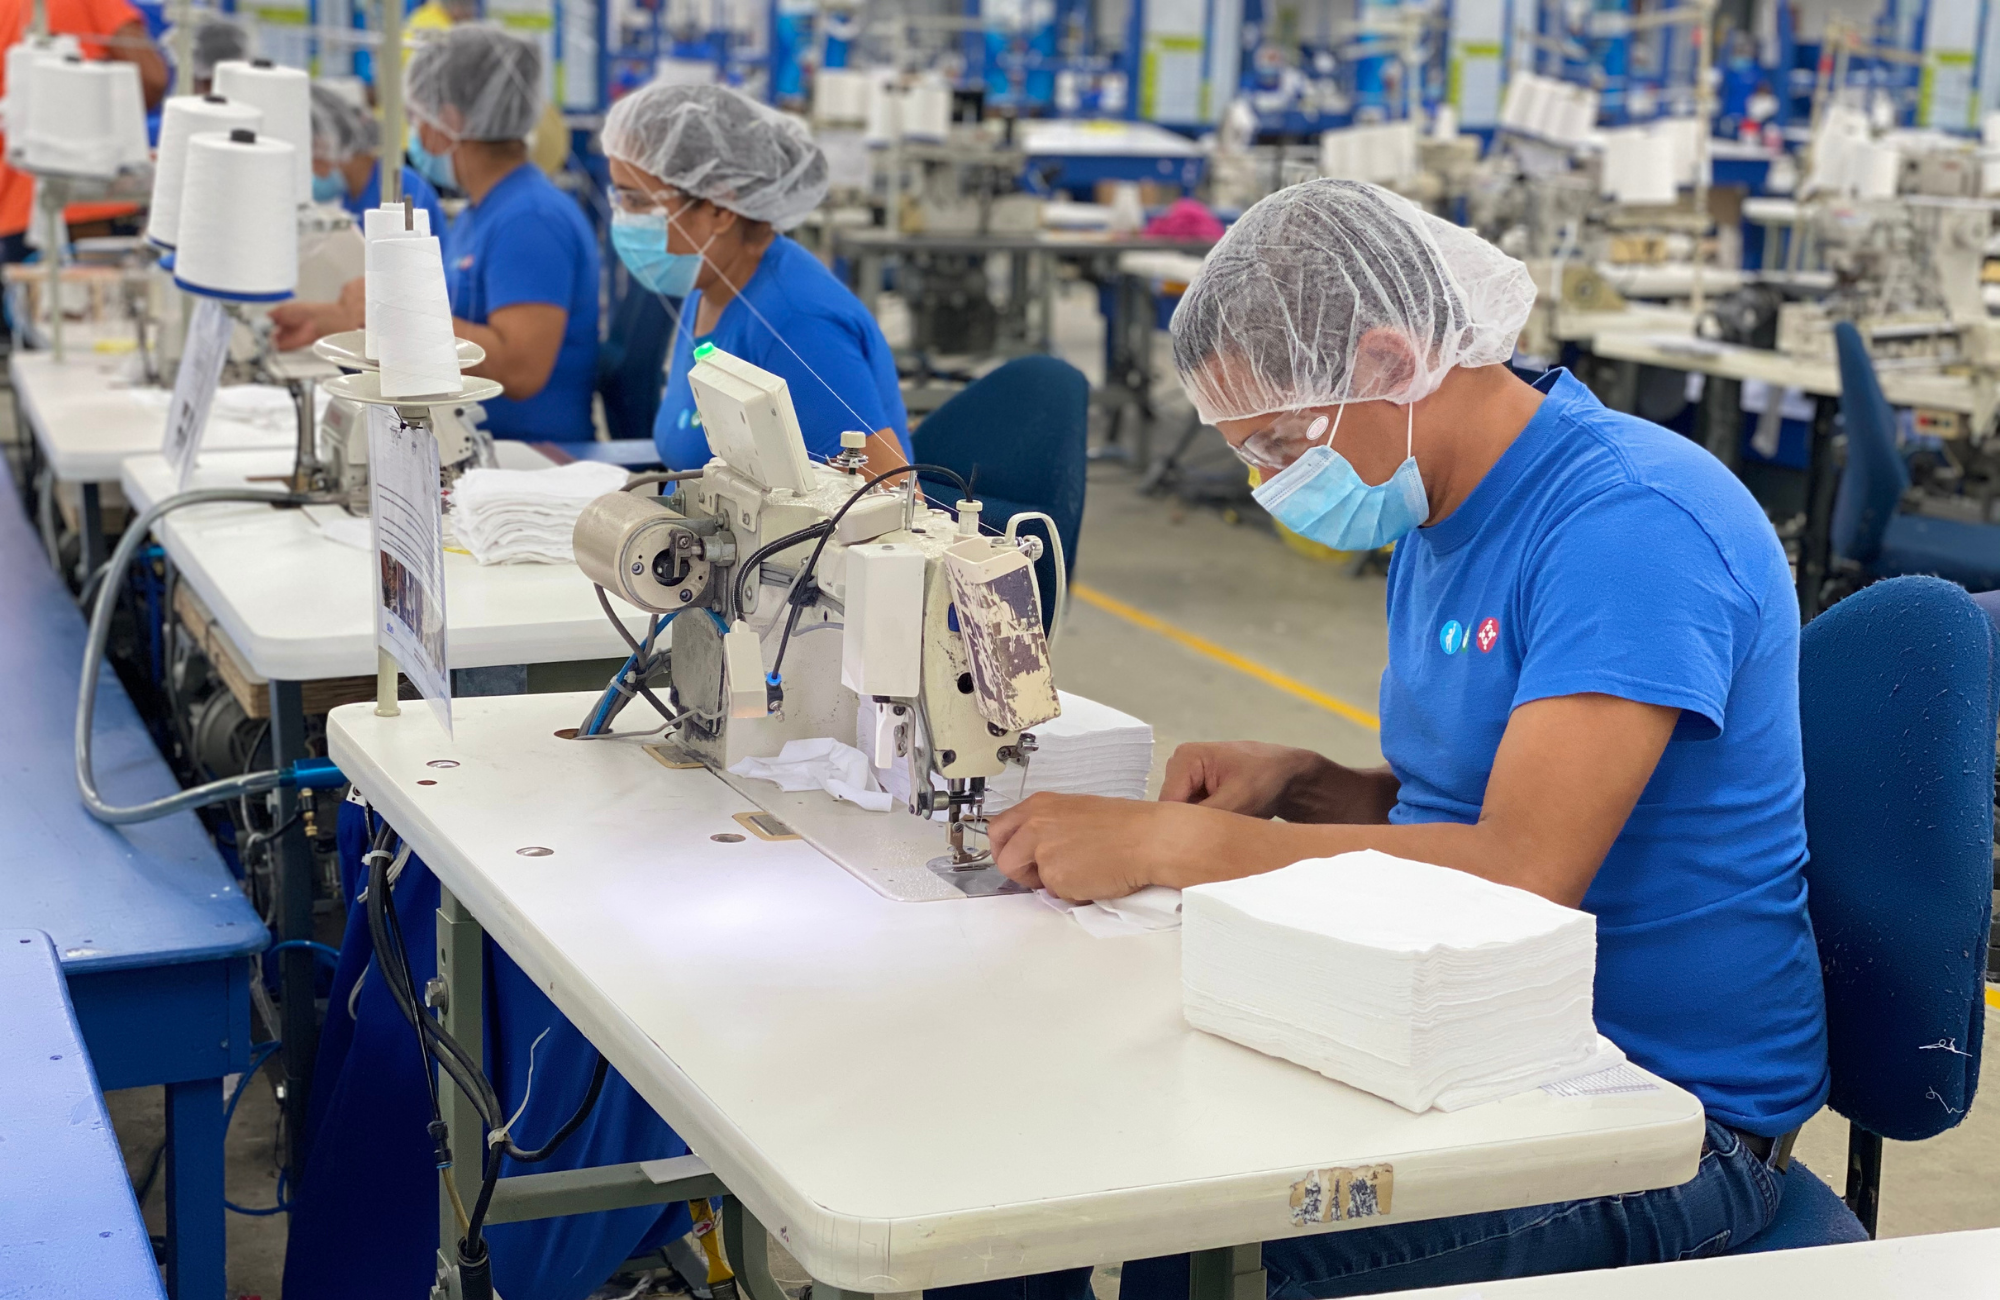 PPE-production at one of Gildan's sewing facilities in Honduras